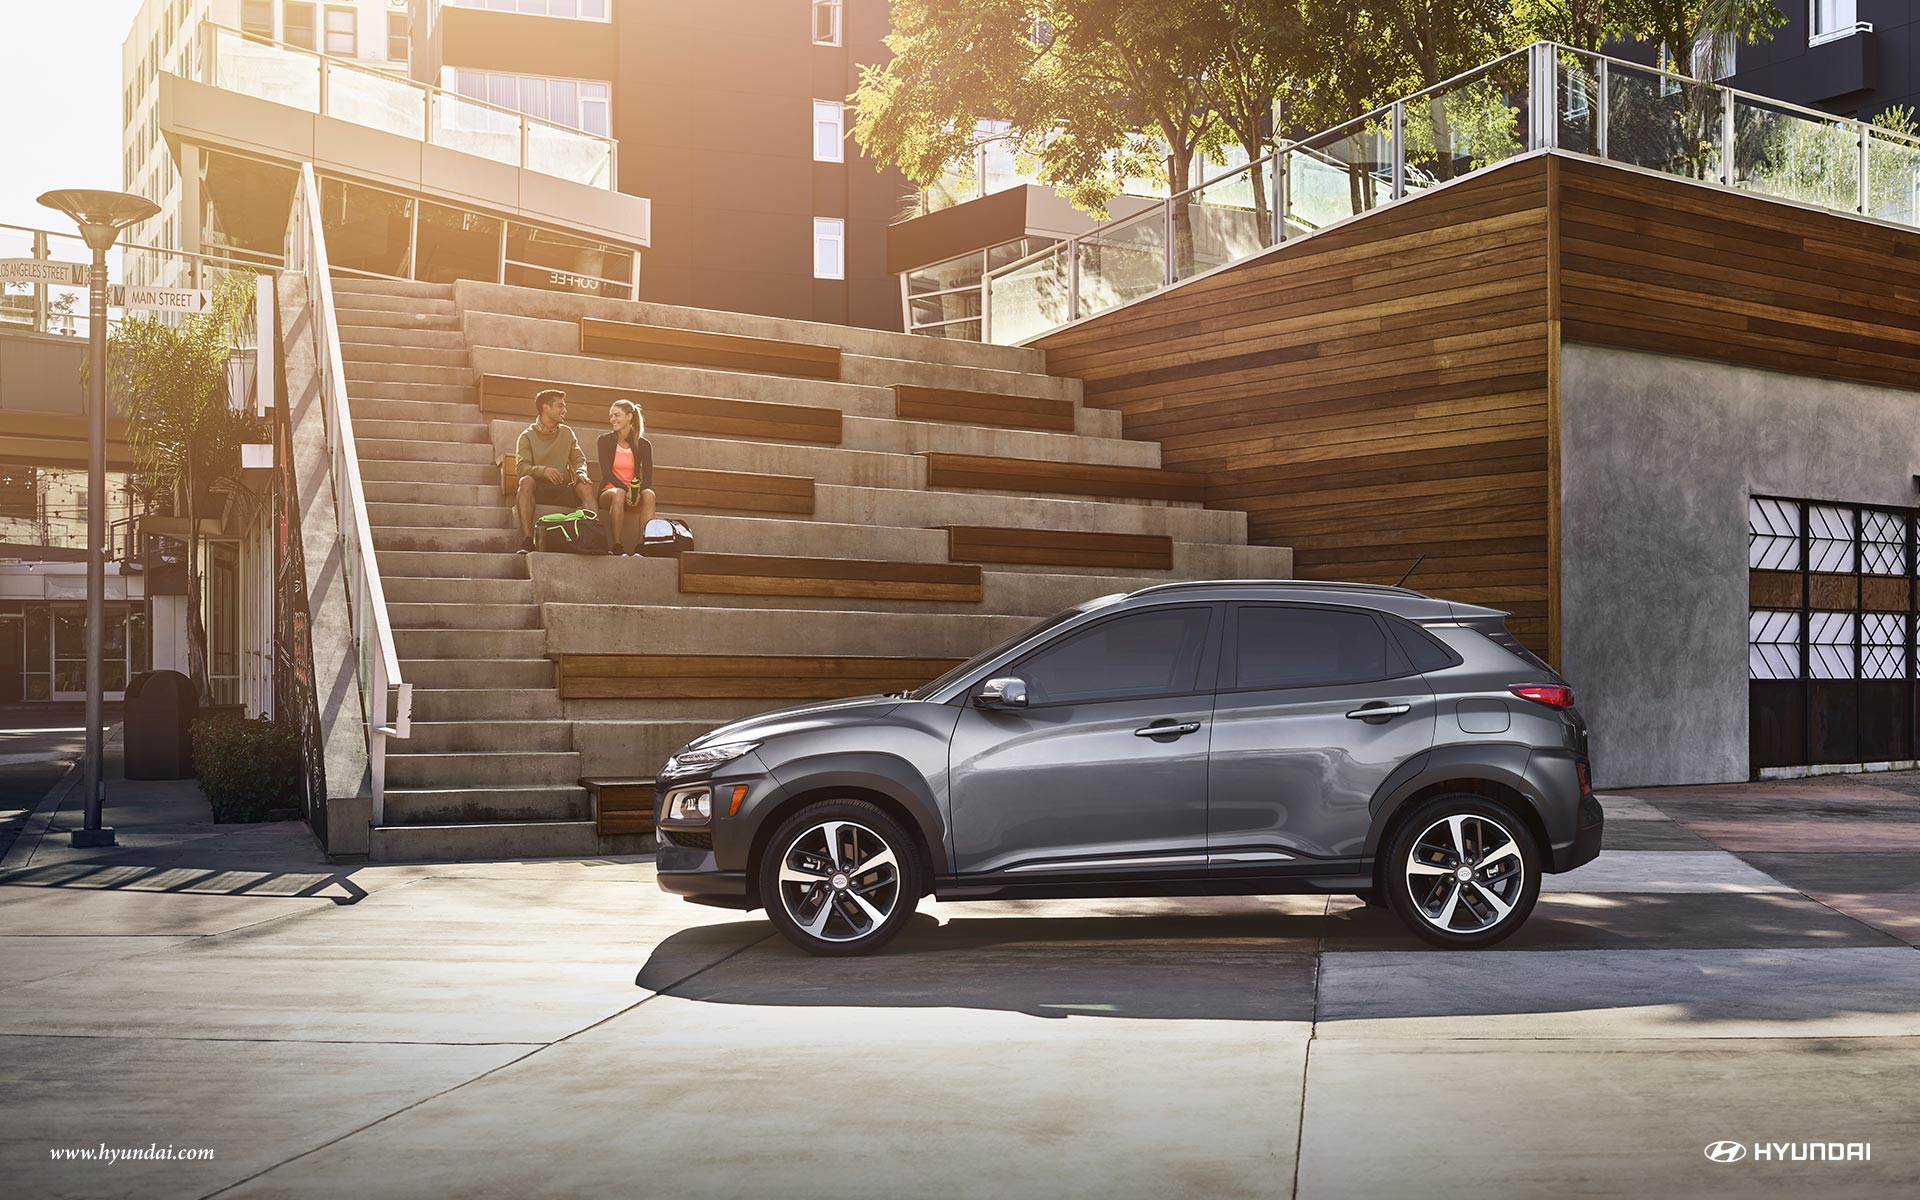 Say Aloha to the All-New Hyundai Kona!